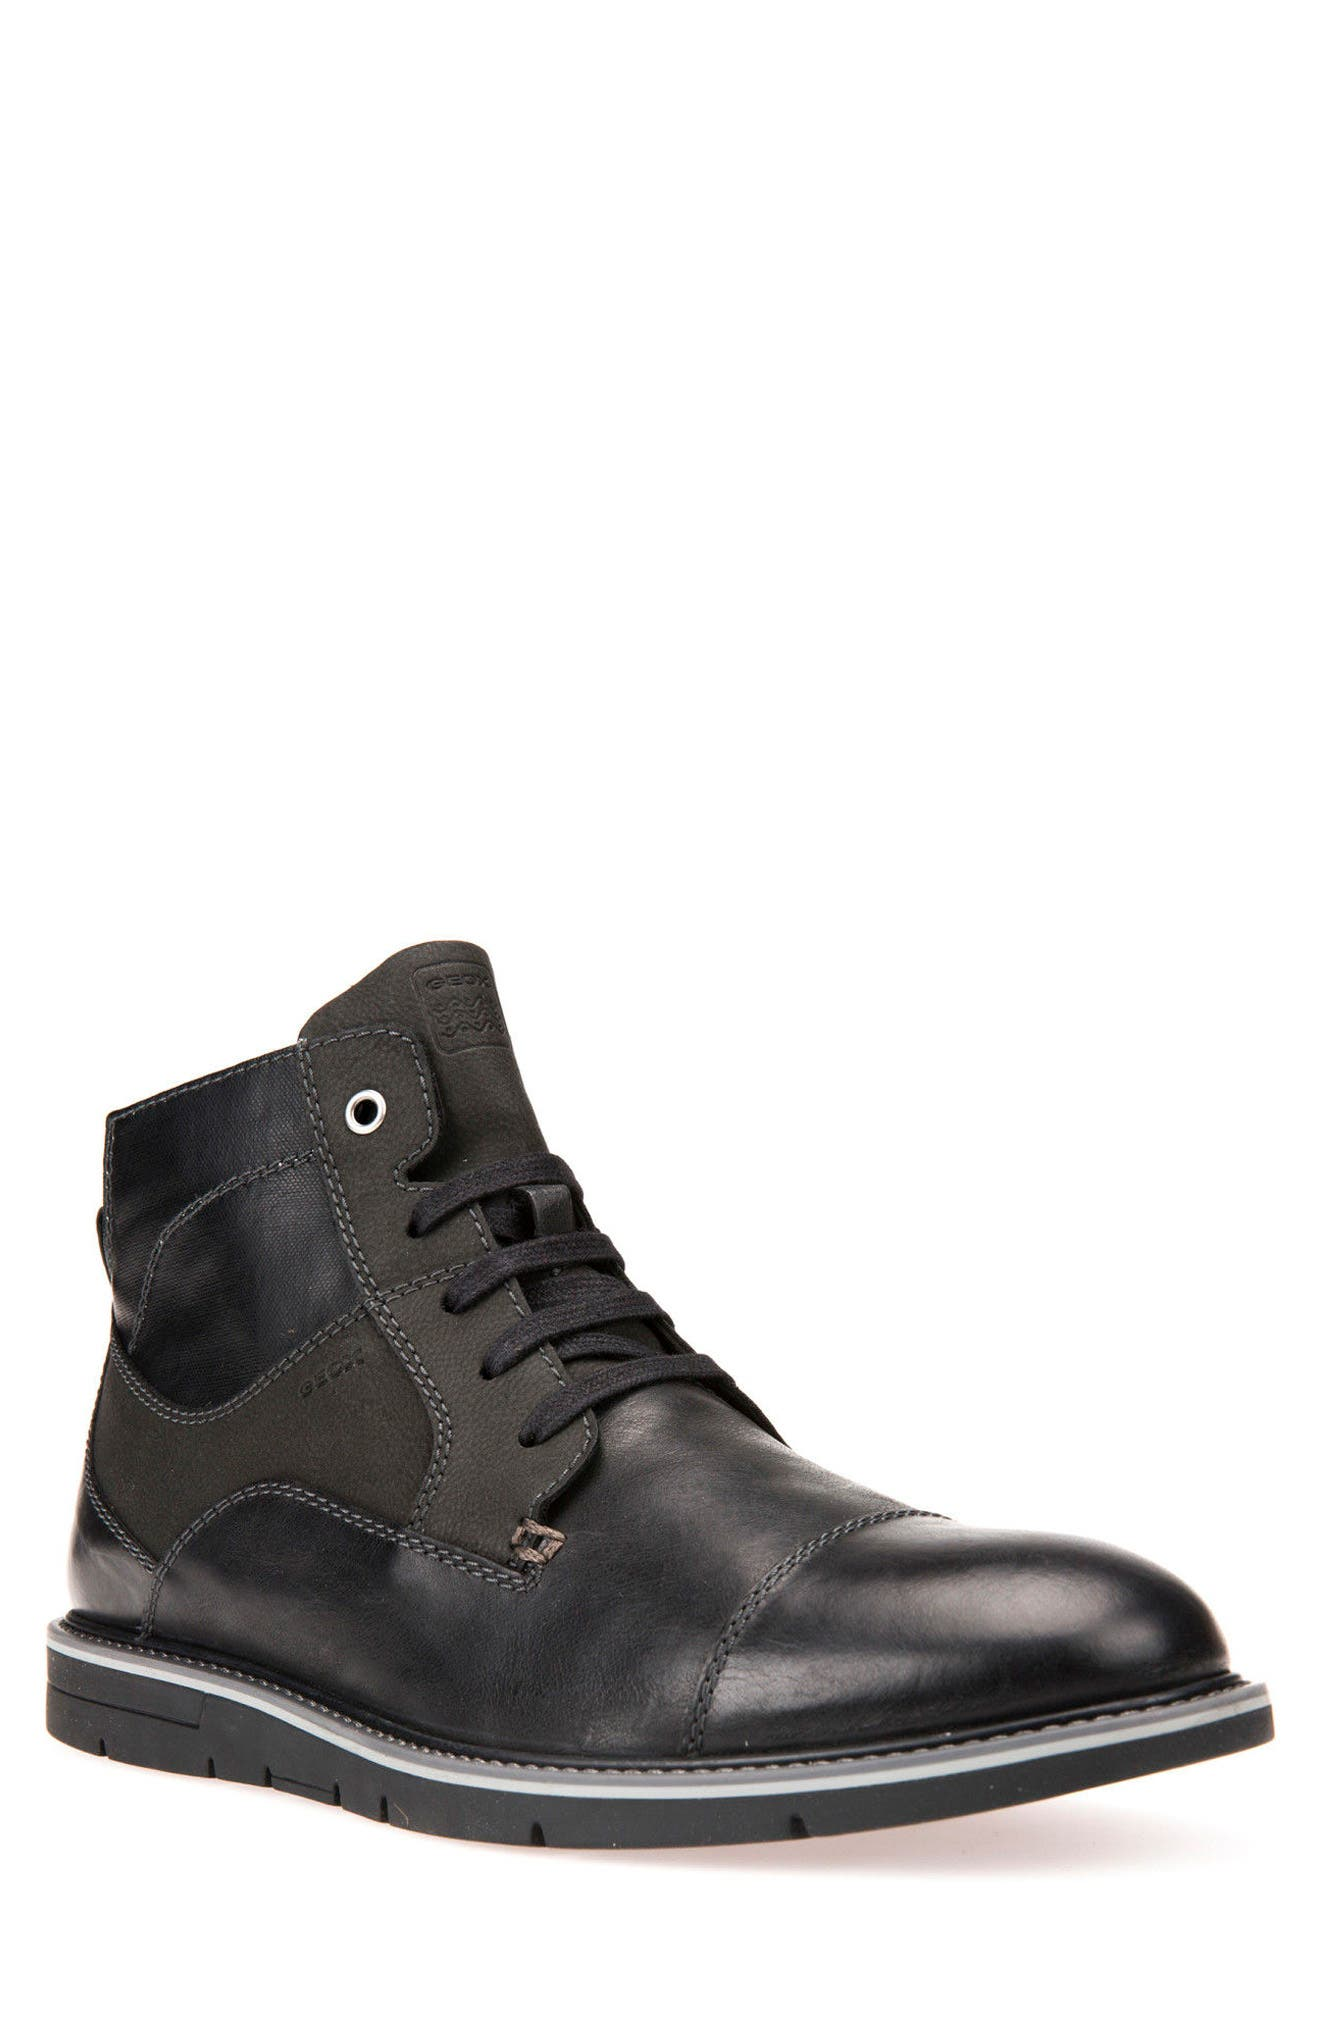 Muvet 5 Cap Toe Boot,                             Main thumbnail 1, color,                             001